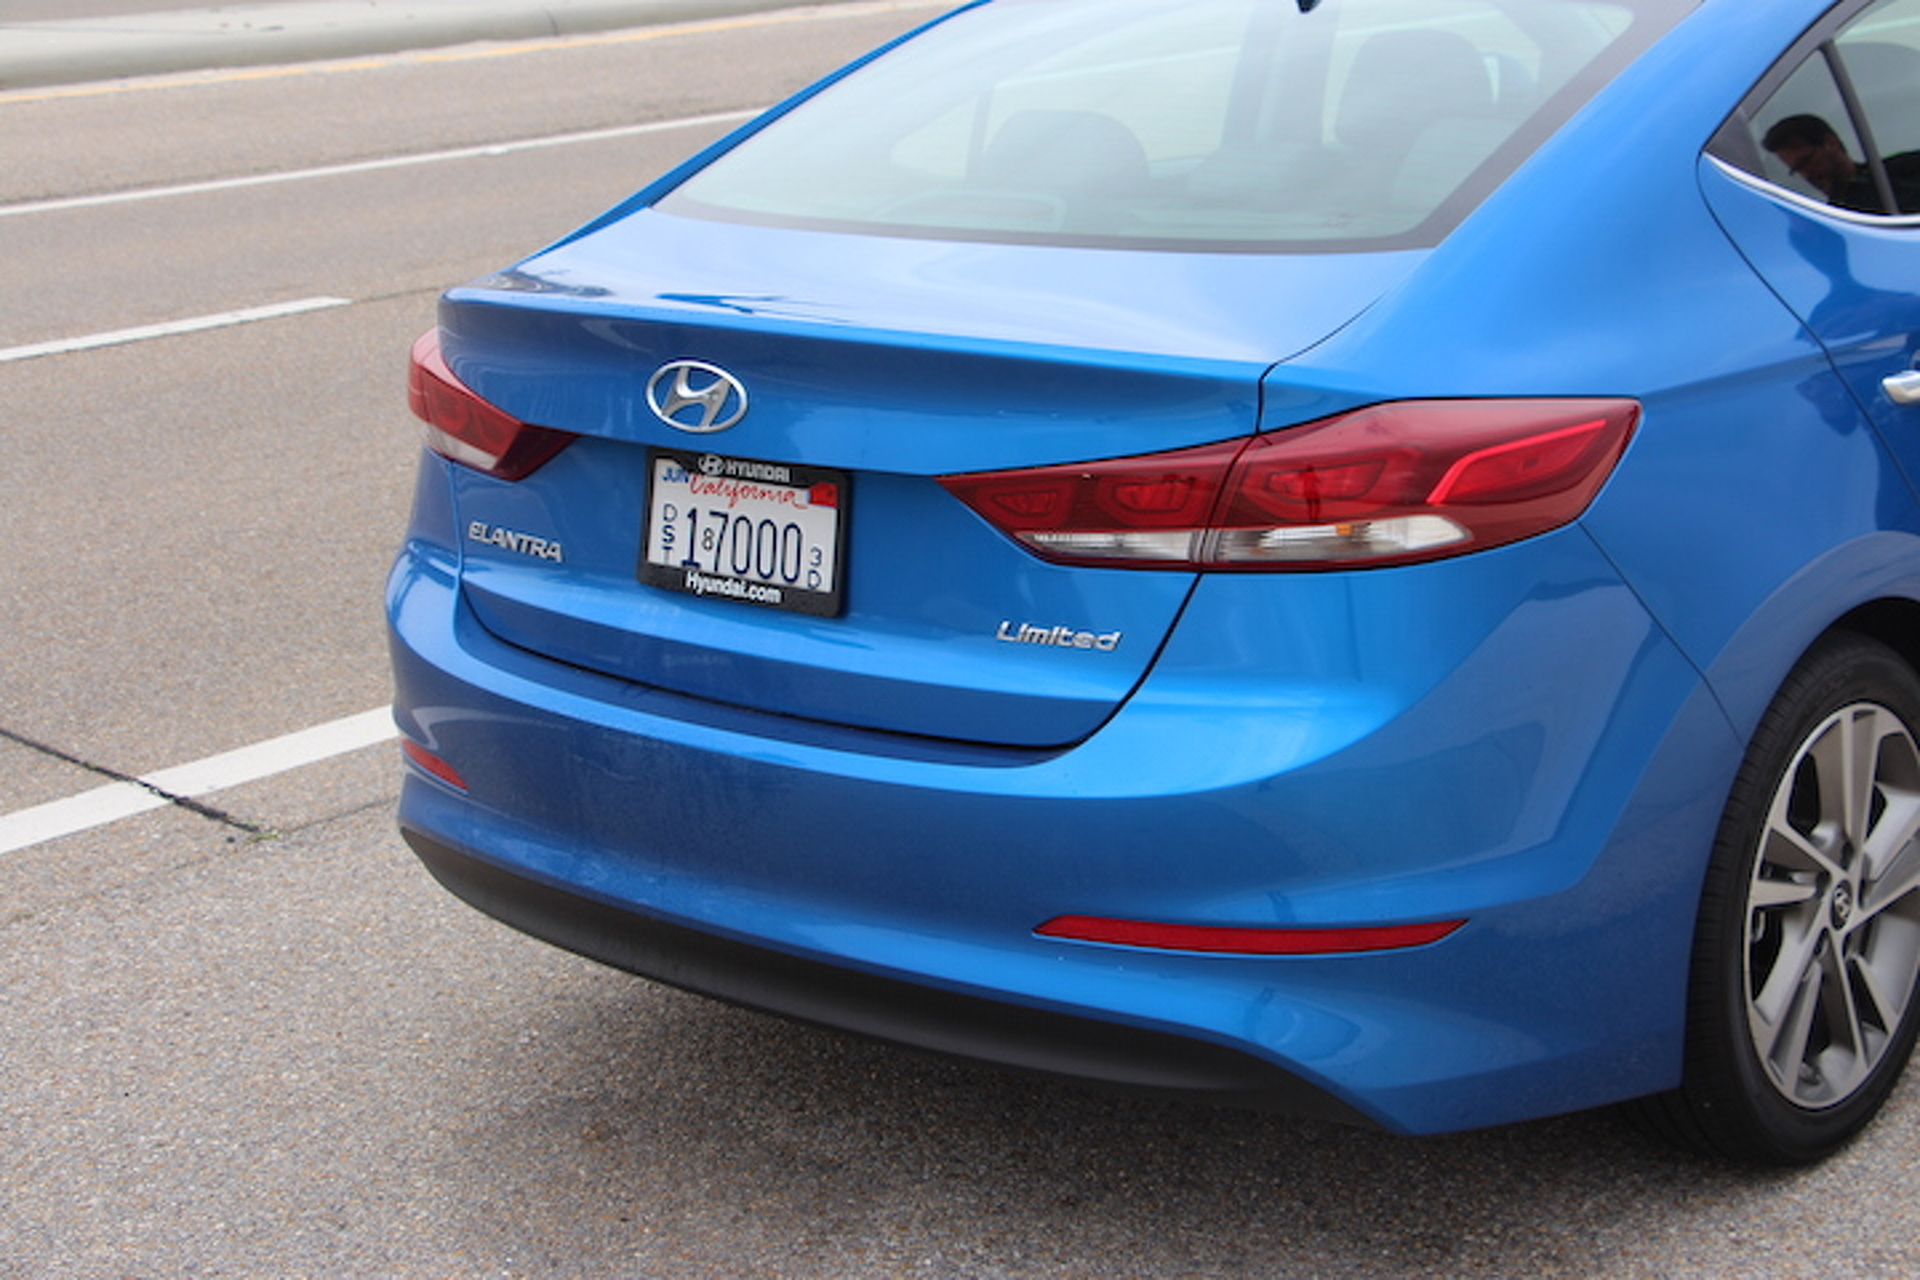 Hyundai Ups the Ante With Handsome New Elantra: First Drive